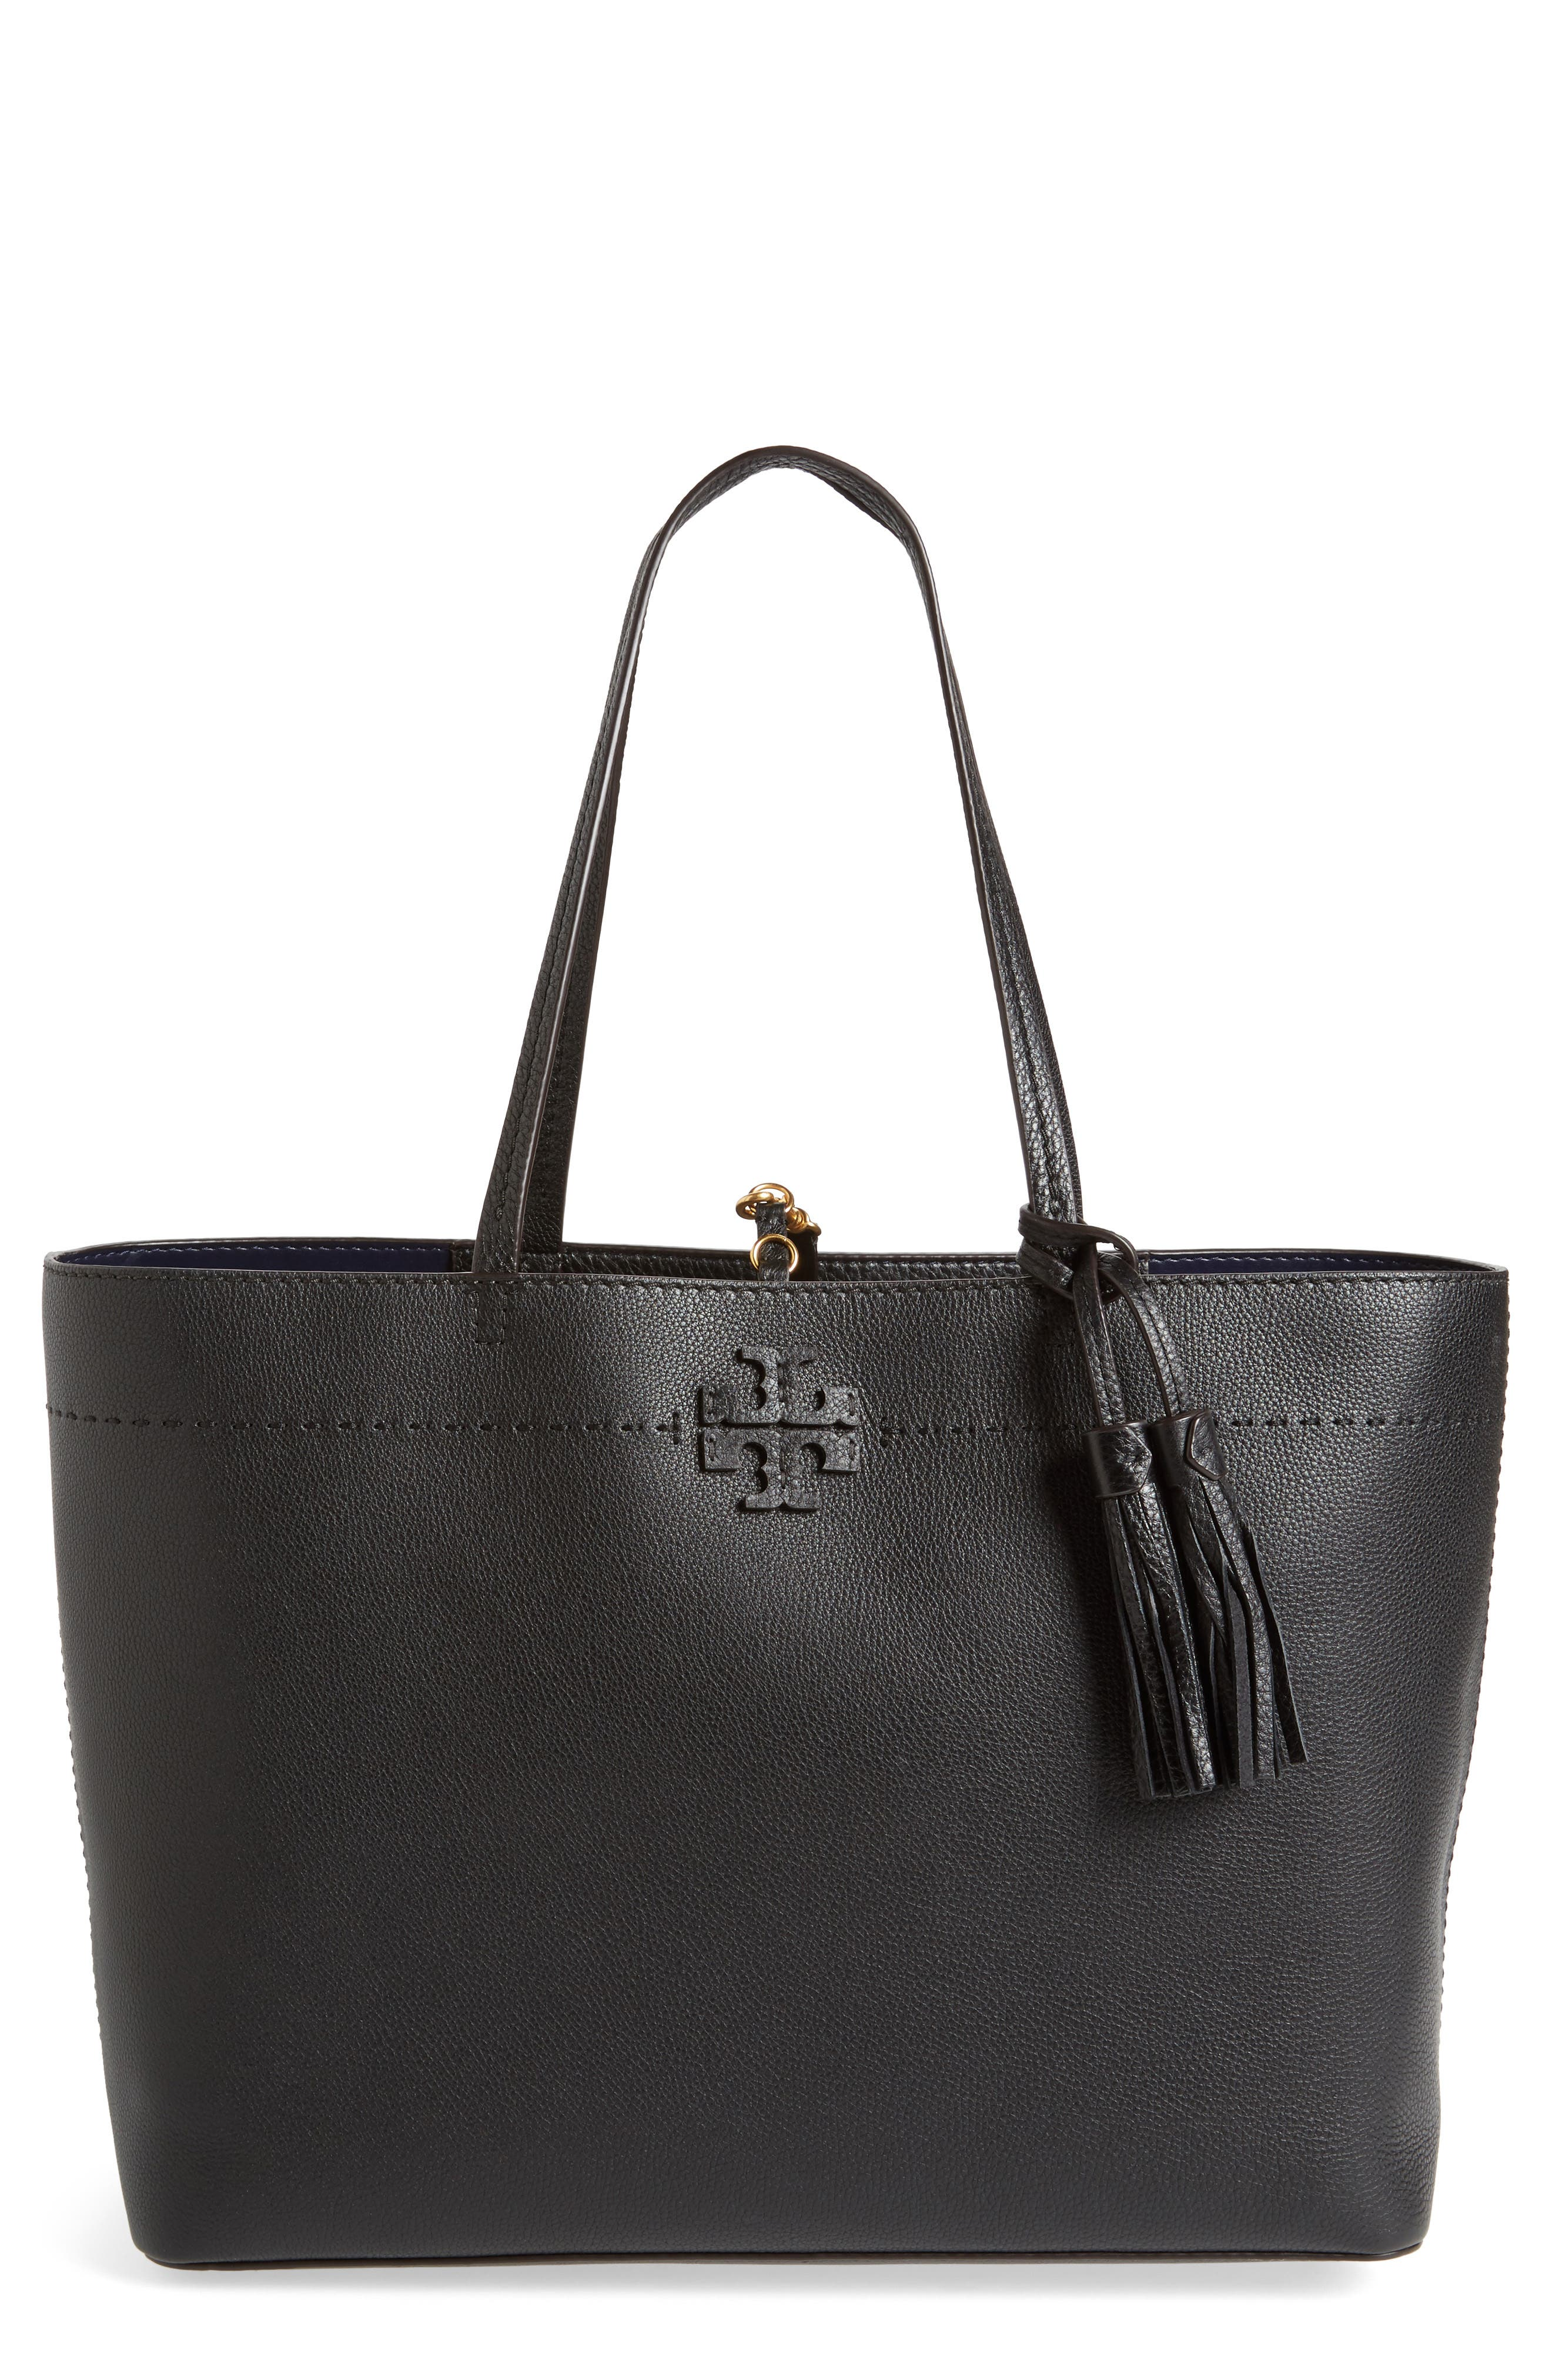 TORY BURCH, McGraw Leather Laptop Tote, Main thumbnail 1, color, BLACK/ ROYAL NAVY